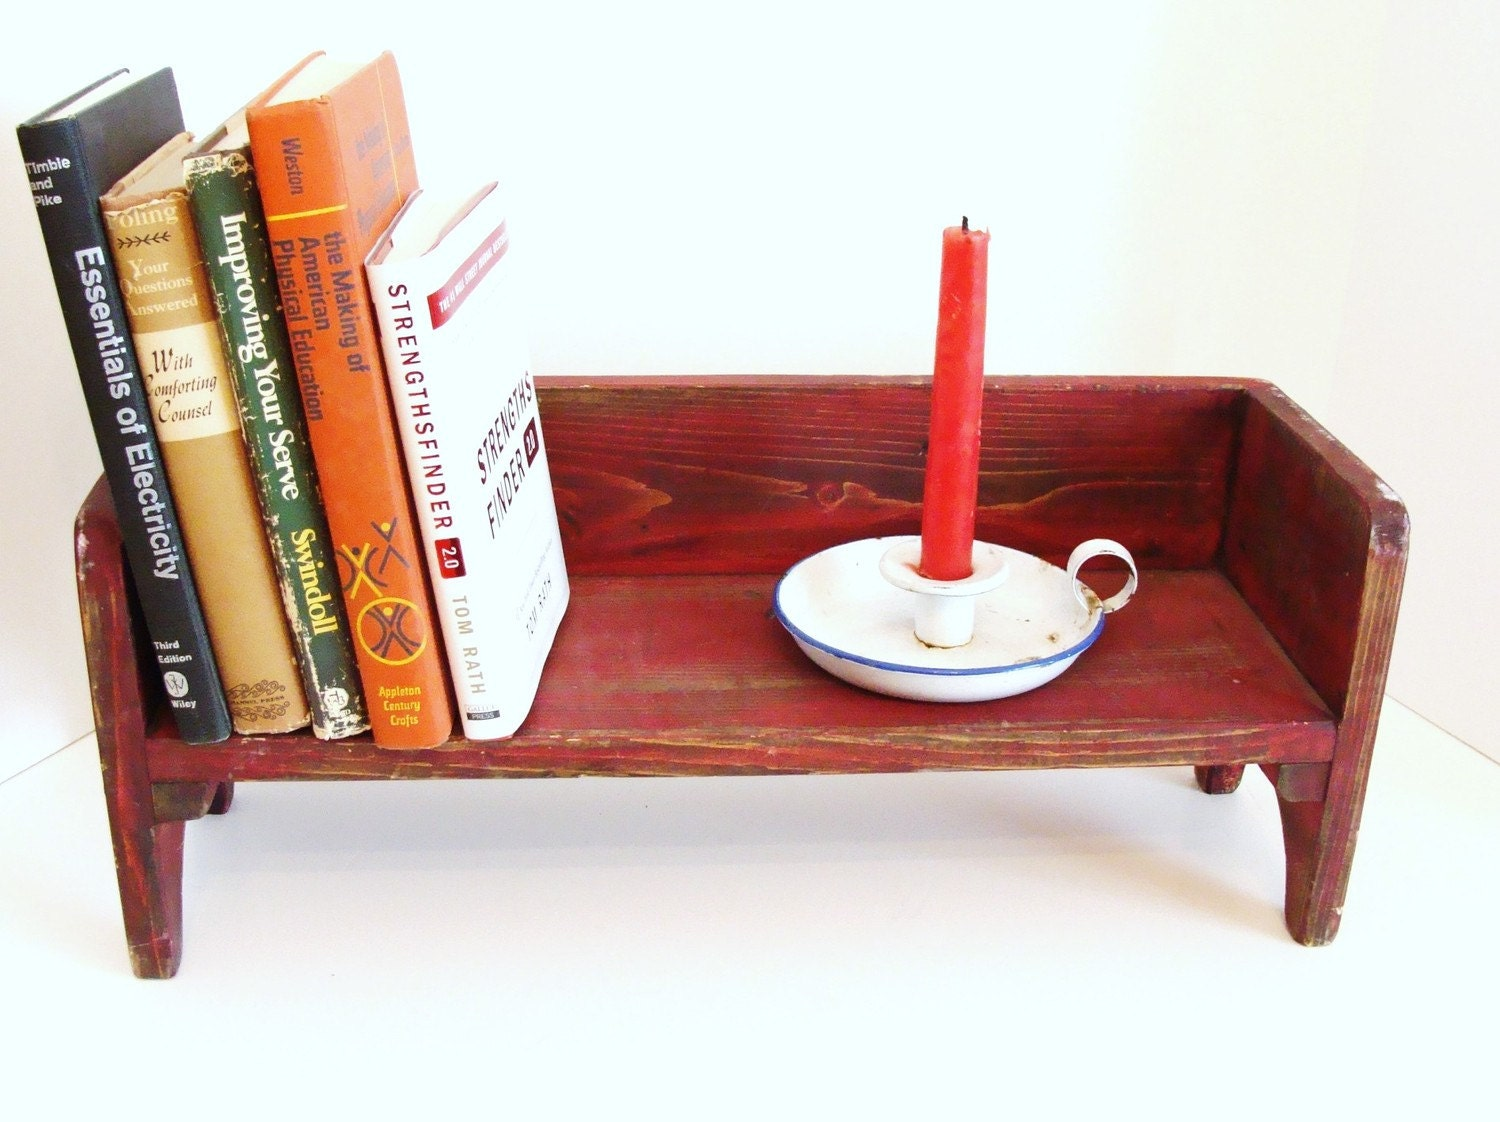 Red Wood Bench Wall Decor Book Shelf Farm to Table Primitive Rustic Cottage